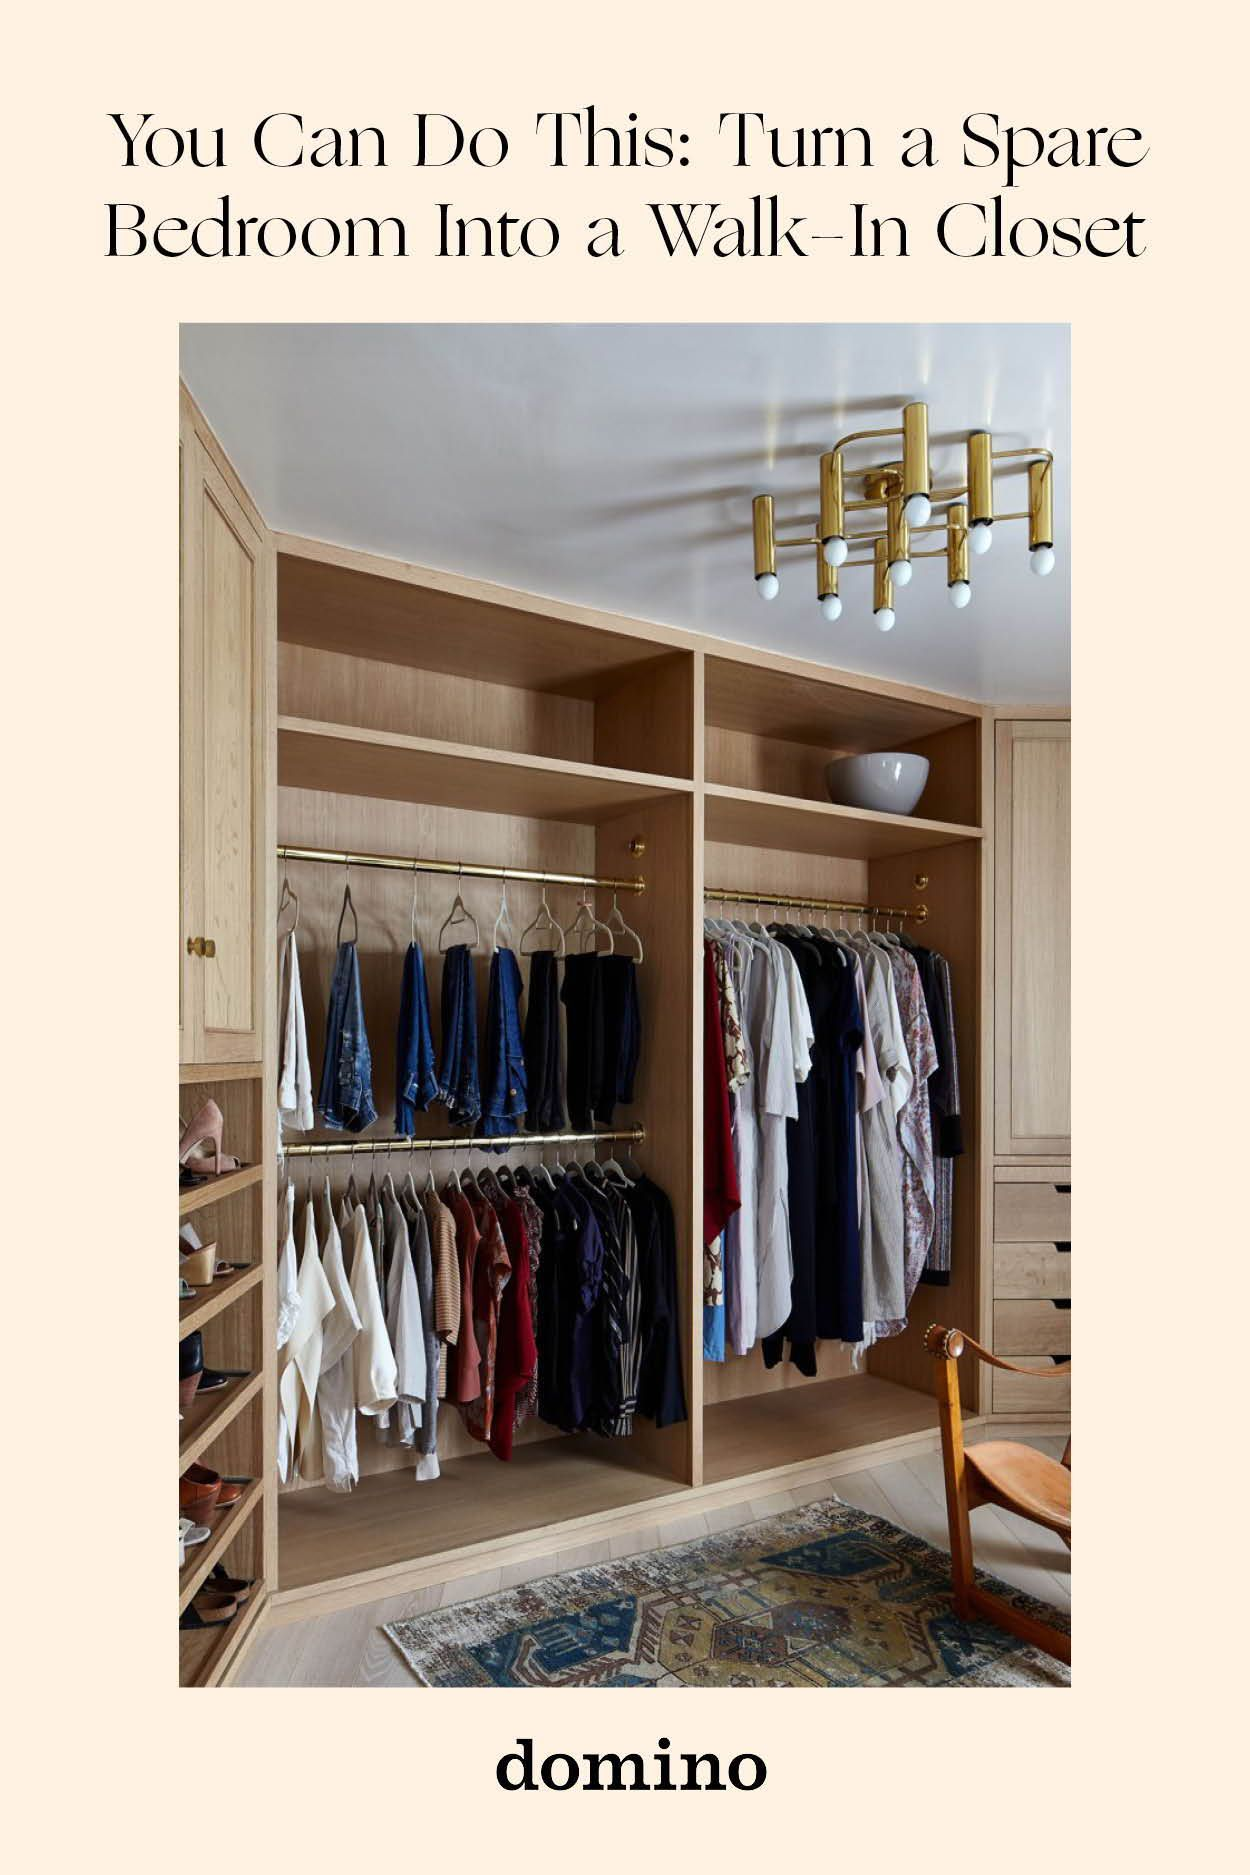 Everything You Need To Know To Turn A Spare Room Into A Walk In Closet Walk In Closet Walk In Closet Small Diy Walk In Closet